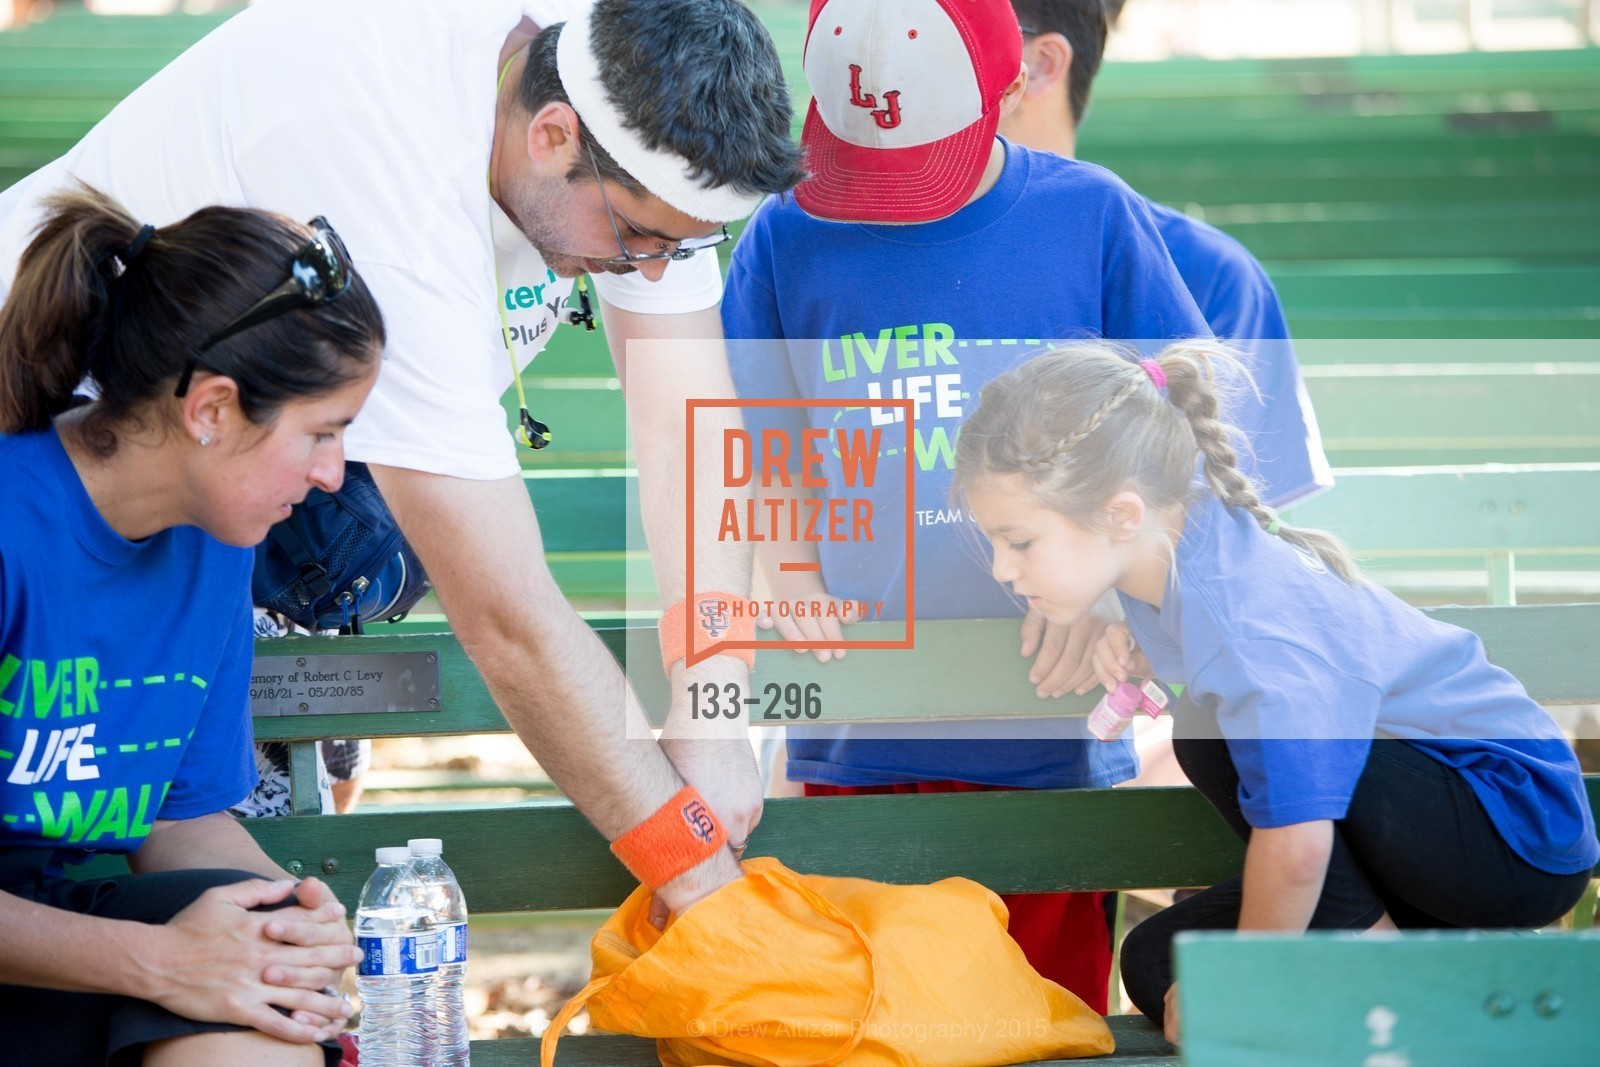 Extras, American Liver Foundation - San Francisco Liver Life Walk 2015, September 20th, 2015, Photo